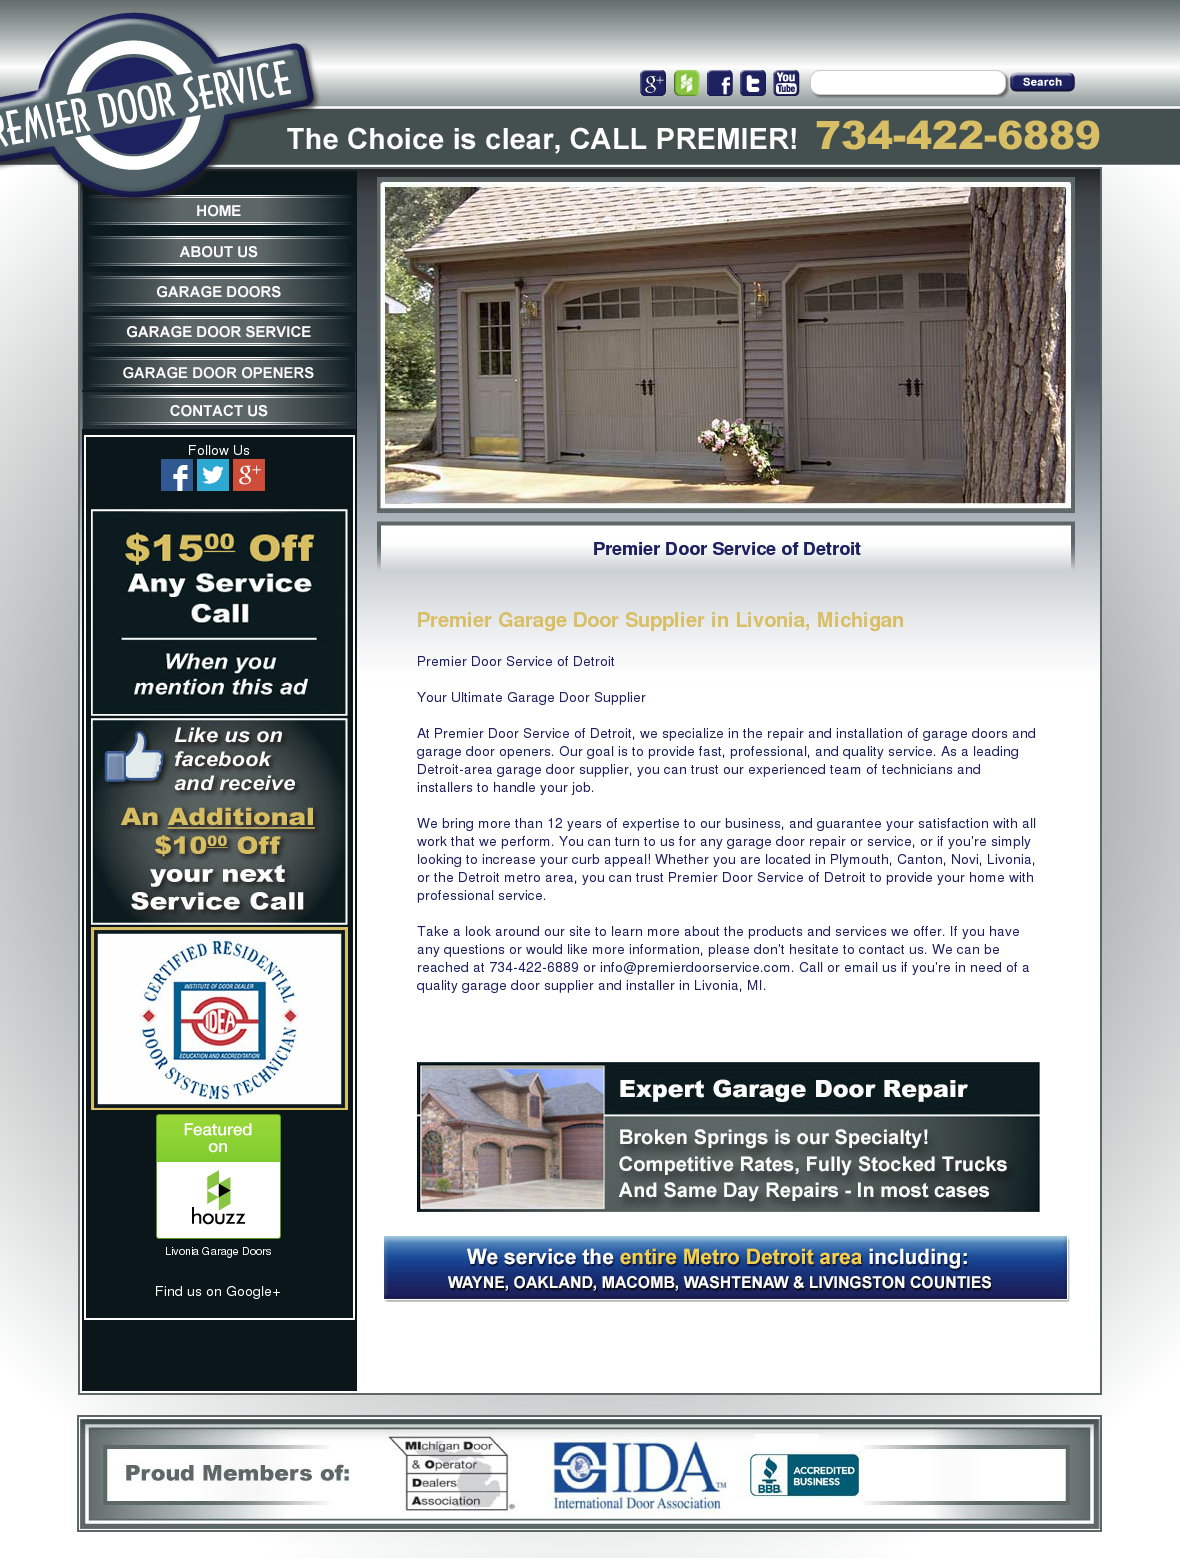 Premier Door Service Website History